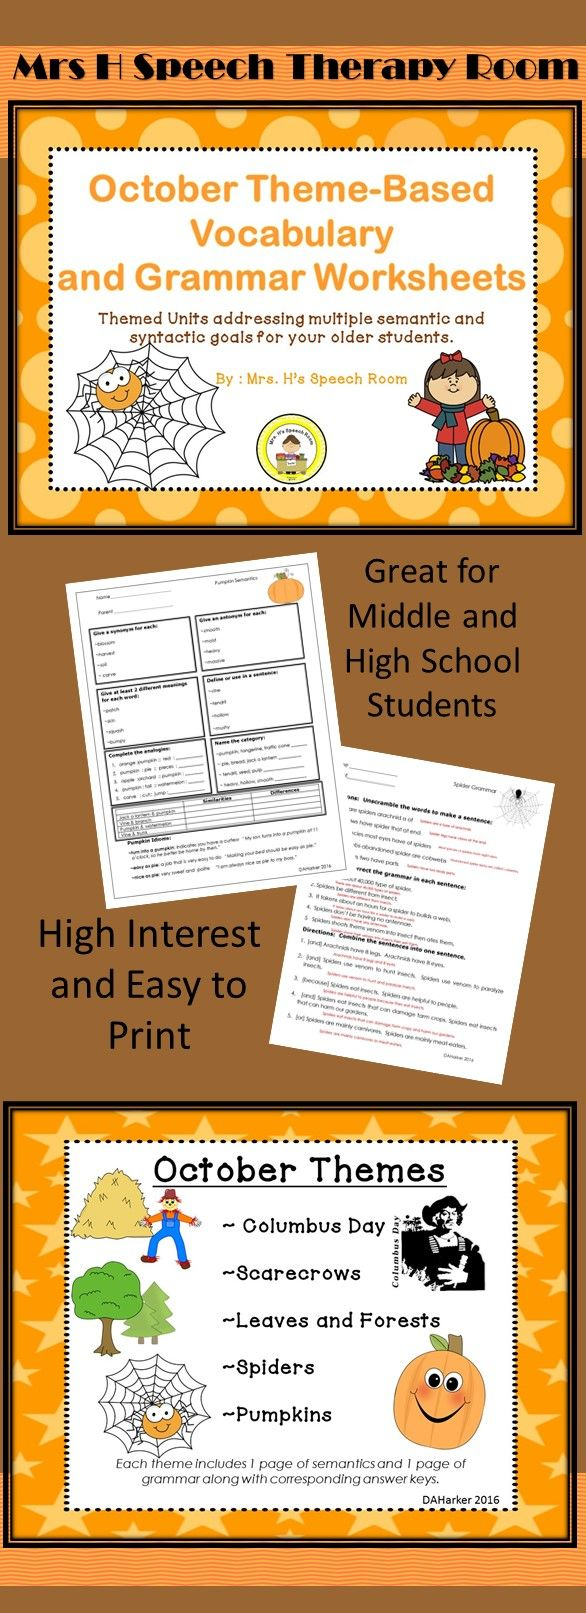 These fun theme-based worksheets address so many language goals in an easy to copy format. 5 timely themes and provides 2 in depth learning pages and answer keys for each theme. Page 1 addresses synonyms, antonyms, multiple meaning words, definitions, analogies, categorization, comparing and contrasting and idioms. Page 2 addresses word ordering, grammatical editing, and combining sentences while incorporating interesting facts about the theme. Answer keys are provided.